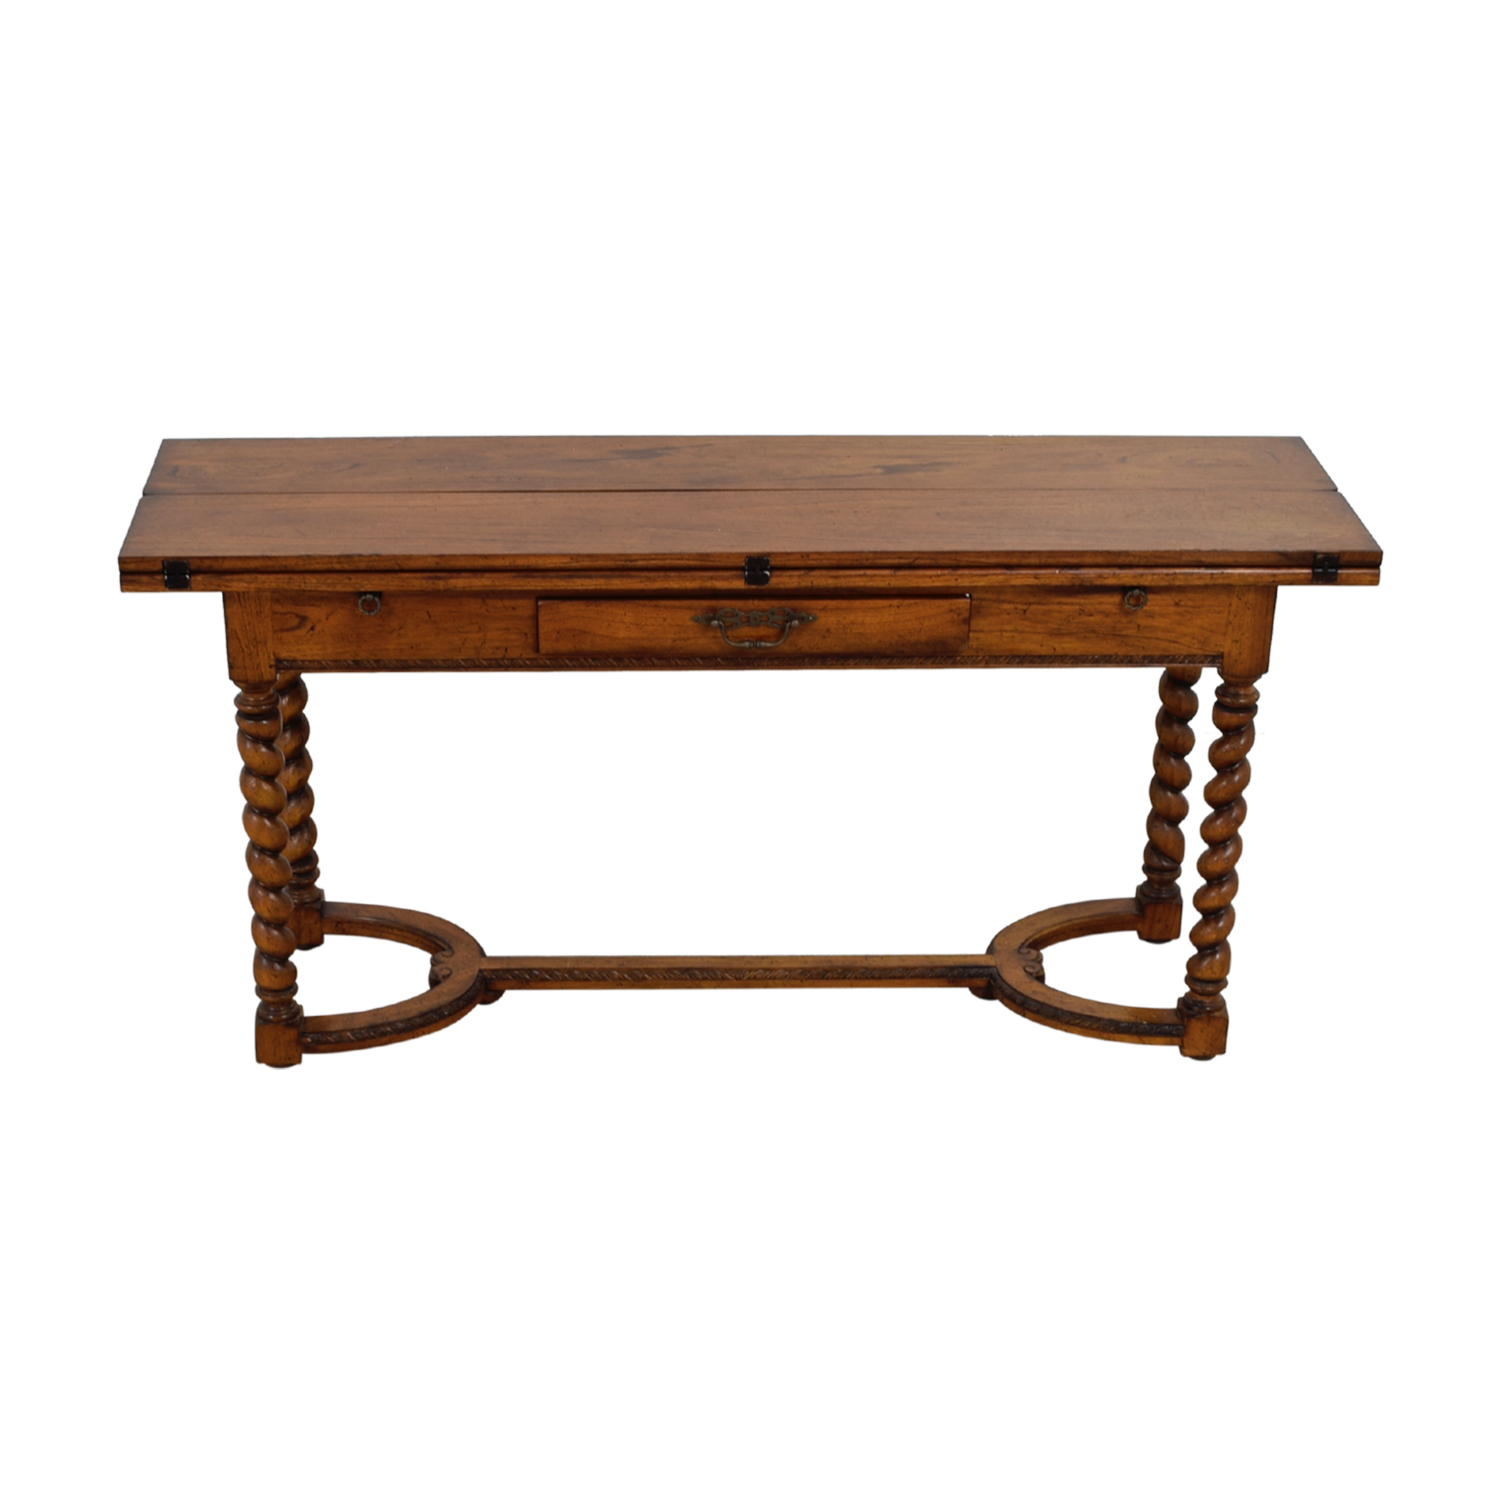 Ralph Lauren Ralph Lauren Single Drawer Refractory Table Accent Tables